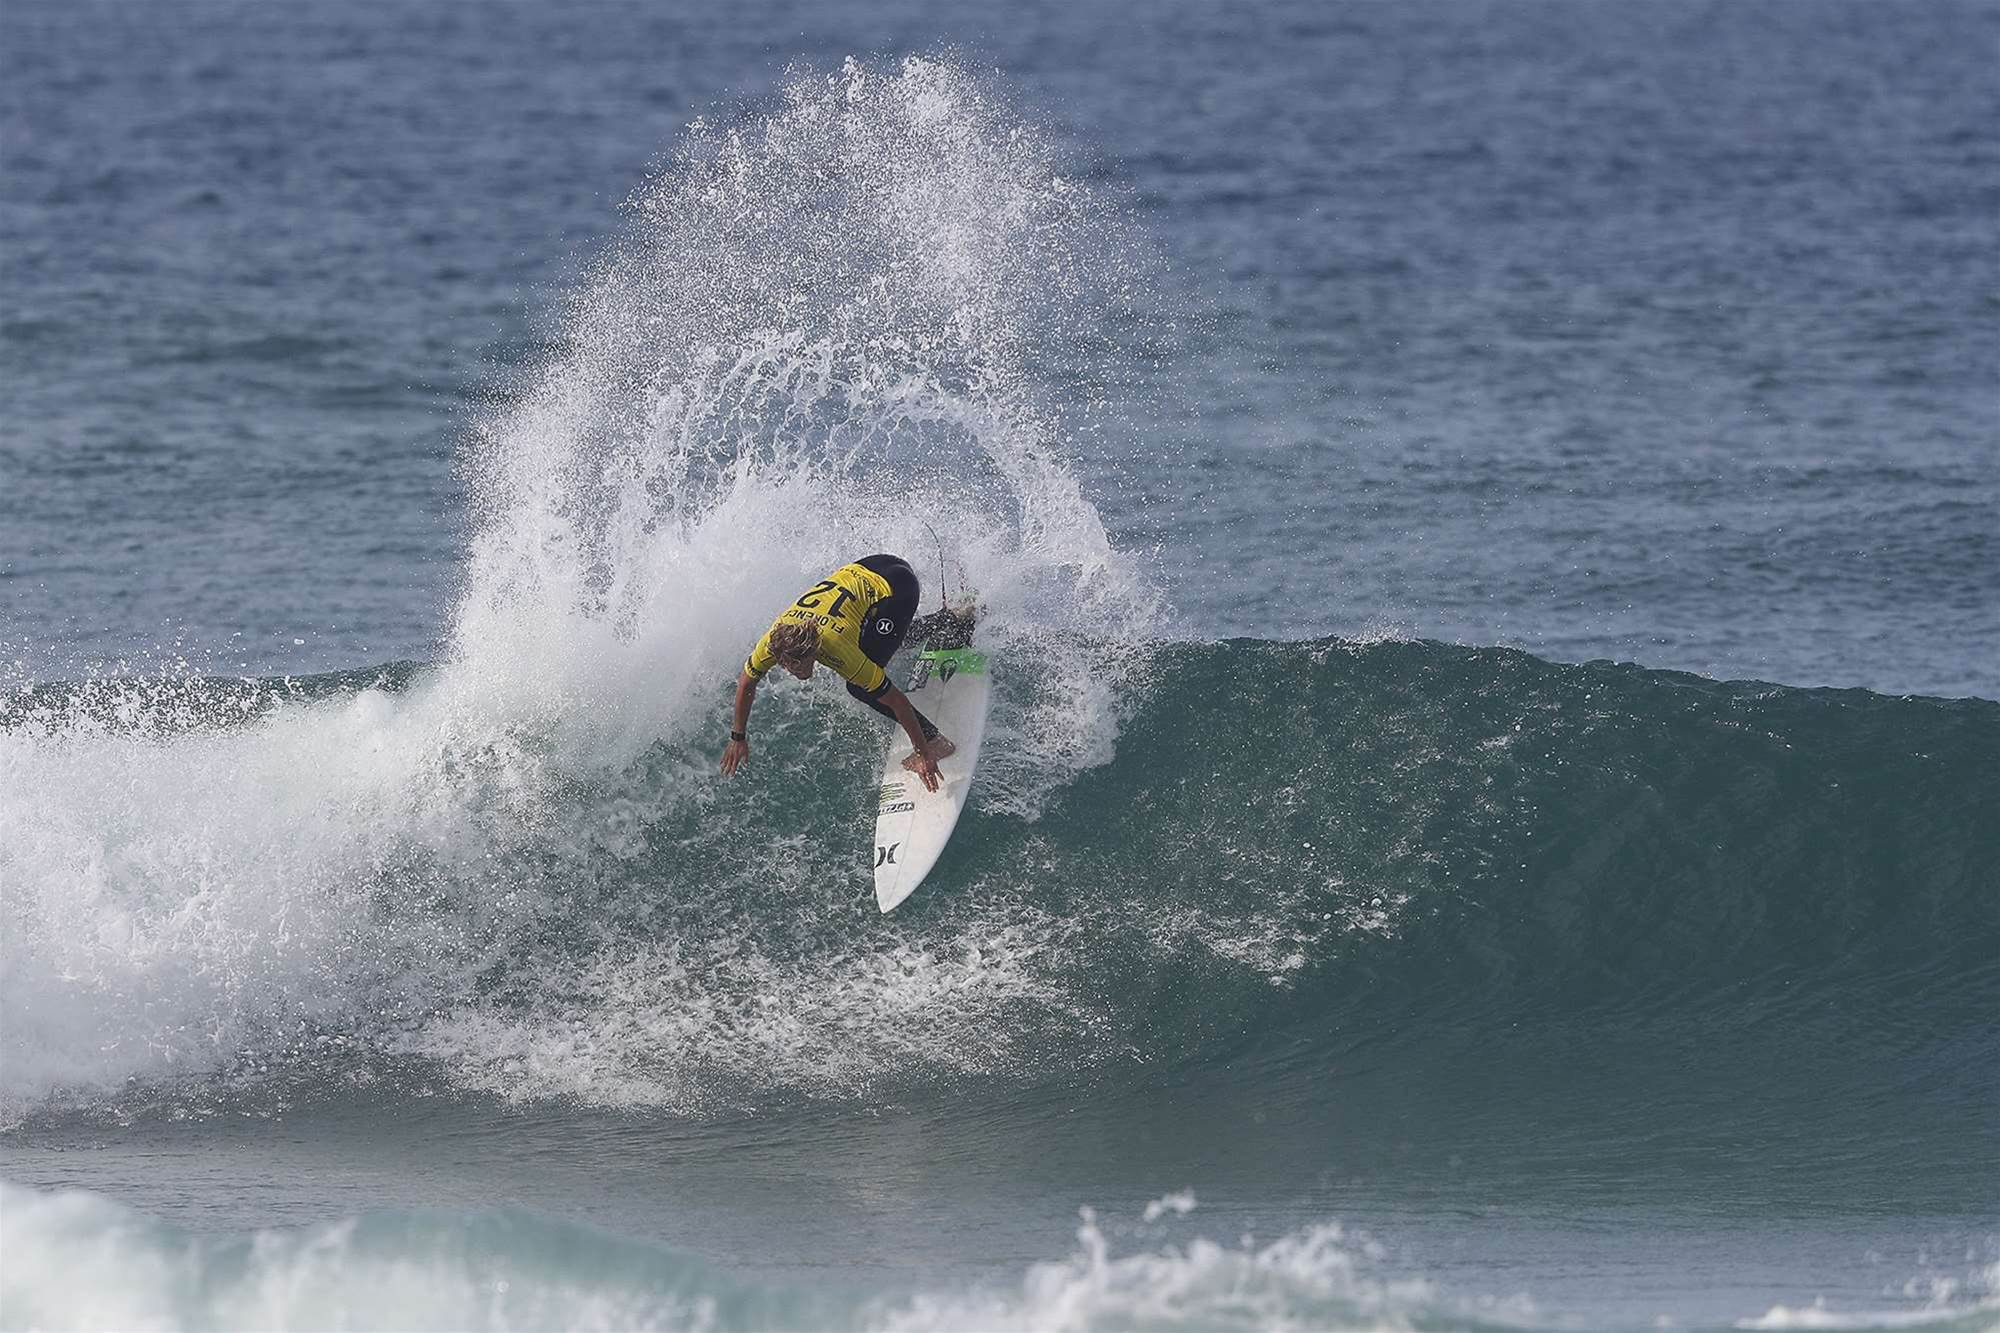 JJF Can Win The World Title In Four Heats